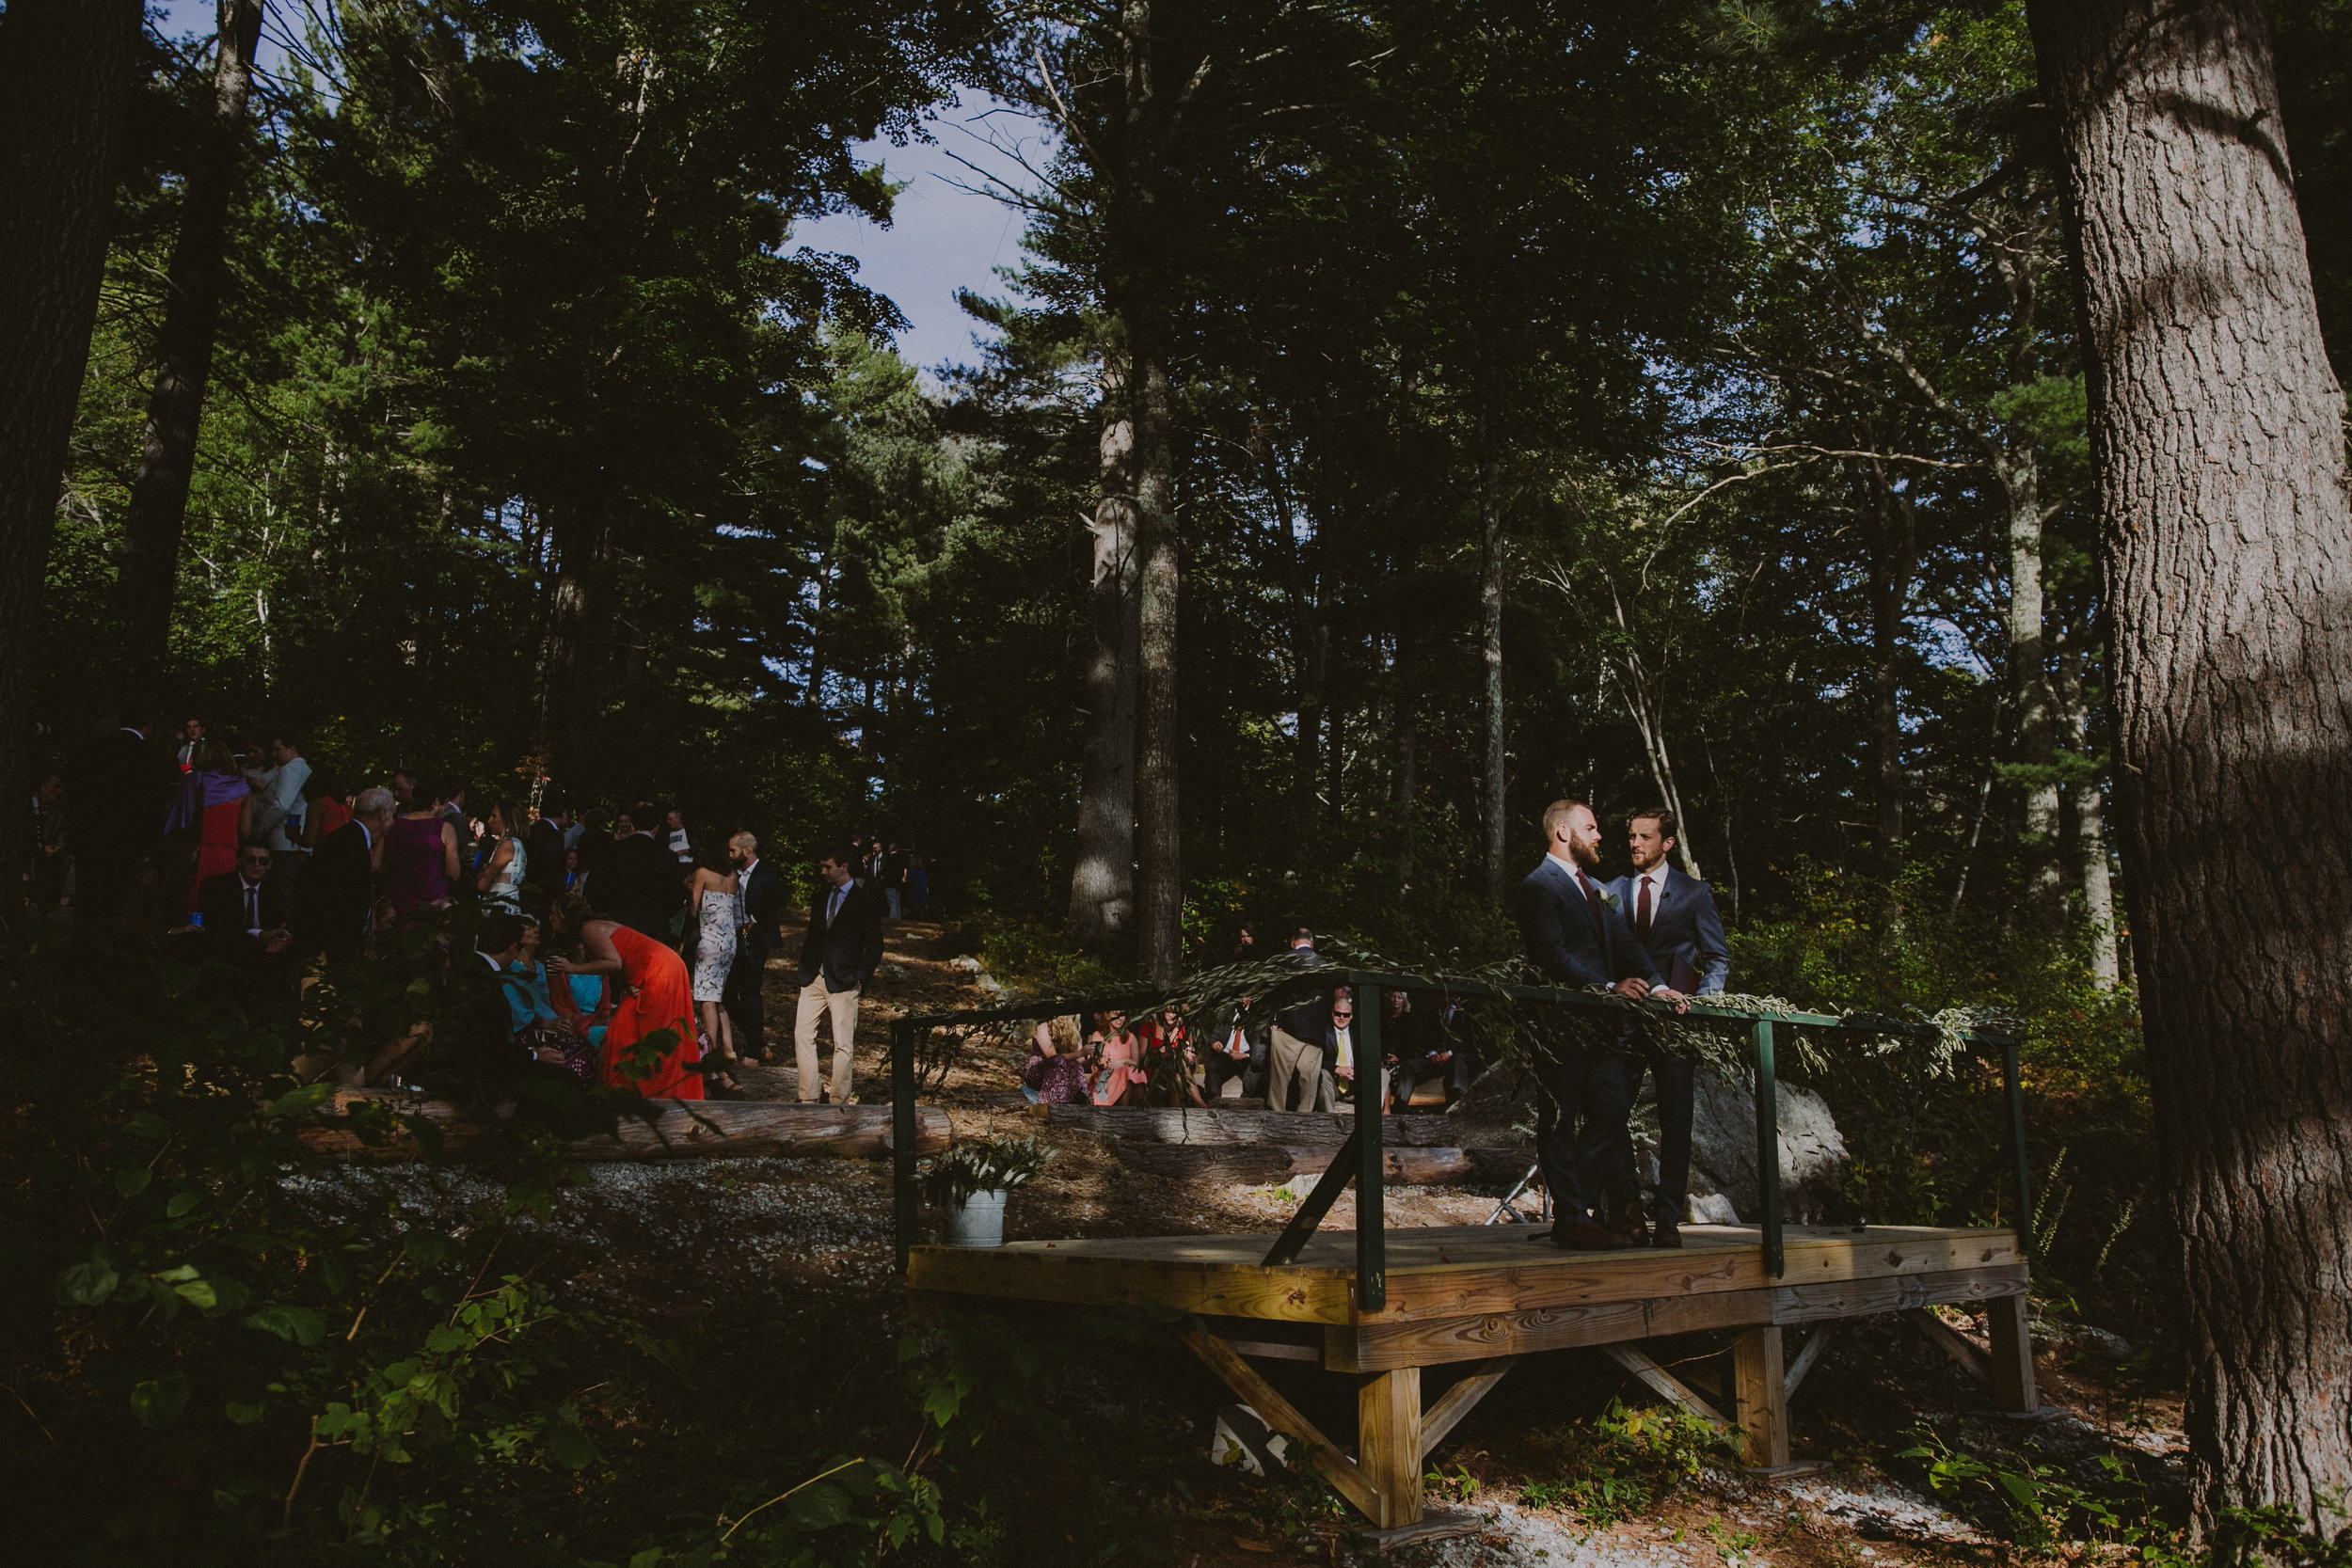 windsor mountain summer camp wedding NH chellise michael photography 1765.jpg